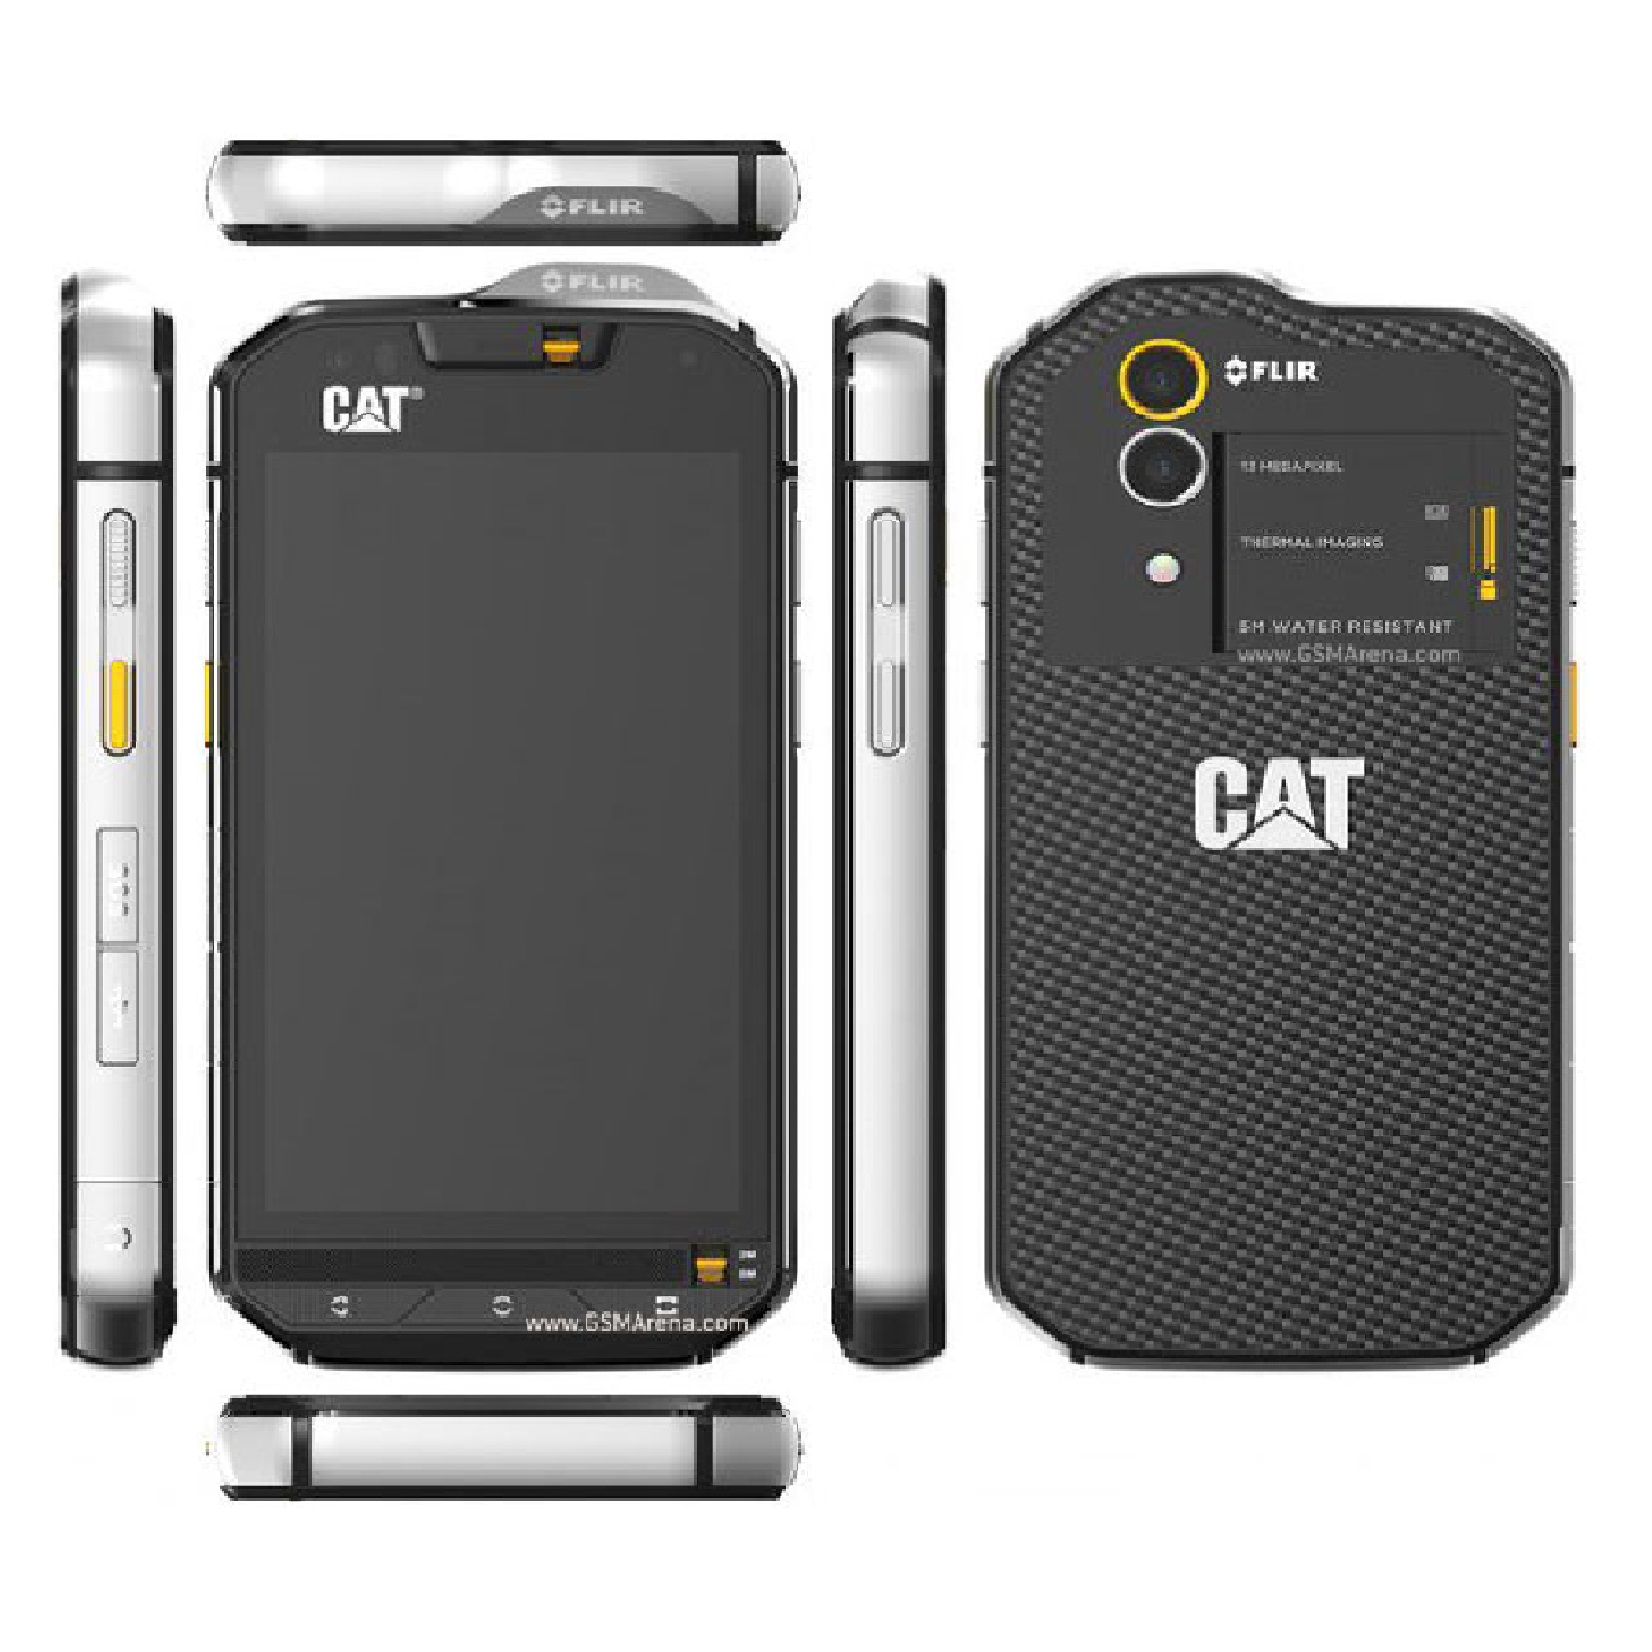 cat s60 tough phones. Black Bedroom Furniture Sets. Home Design Ideas